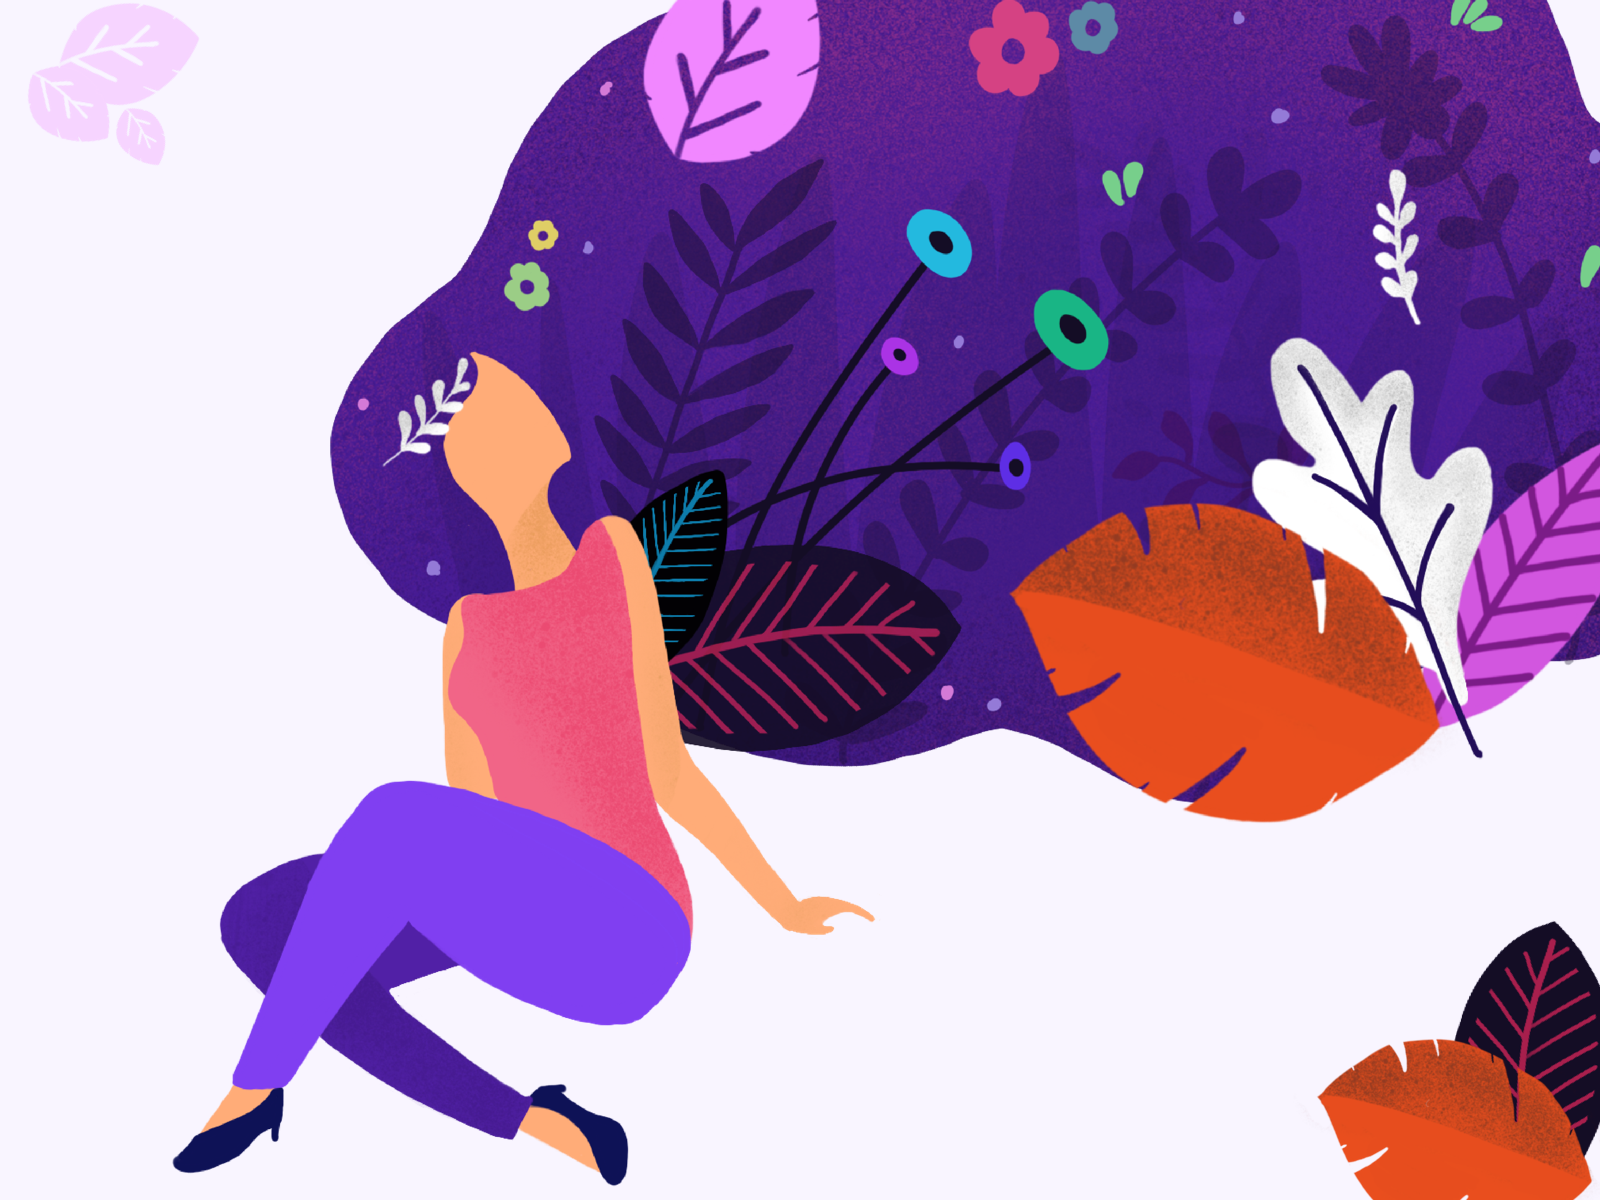 Day 01 - Imagination of a happier world - illustration gradient flora abstract flowers color brush grain design nature girl illustration